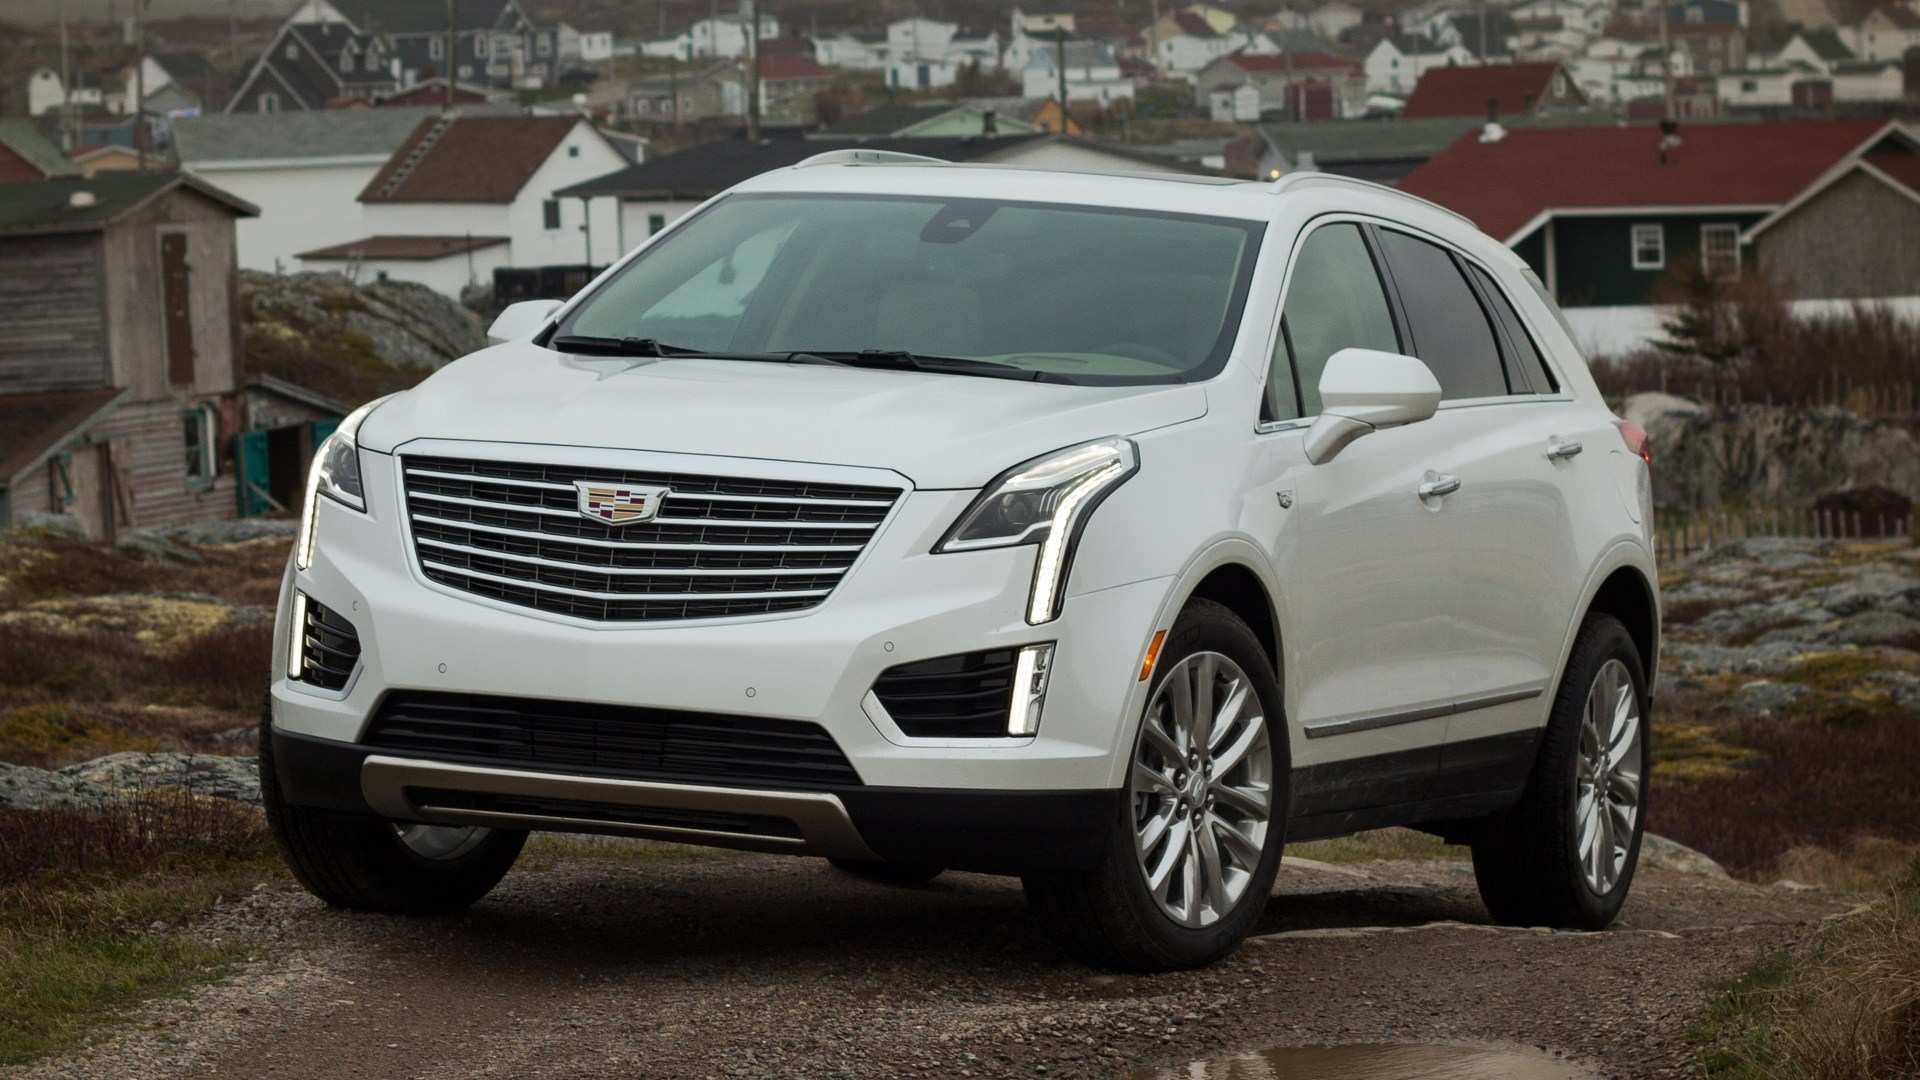 20 A Cadillac Xt3 2020 Research New